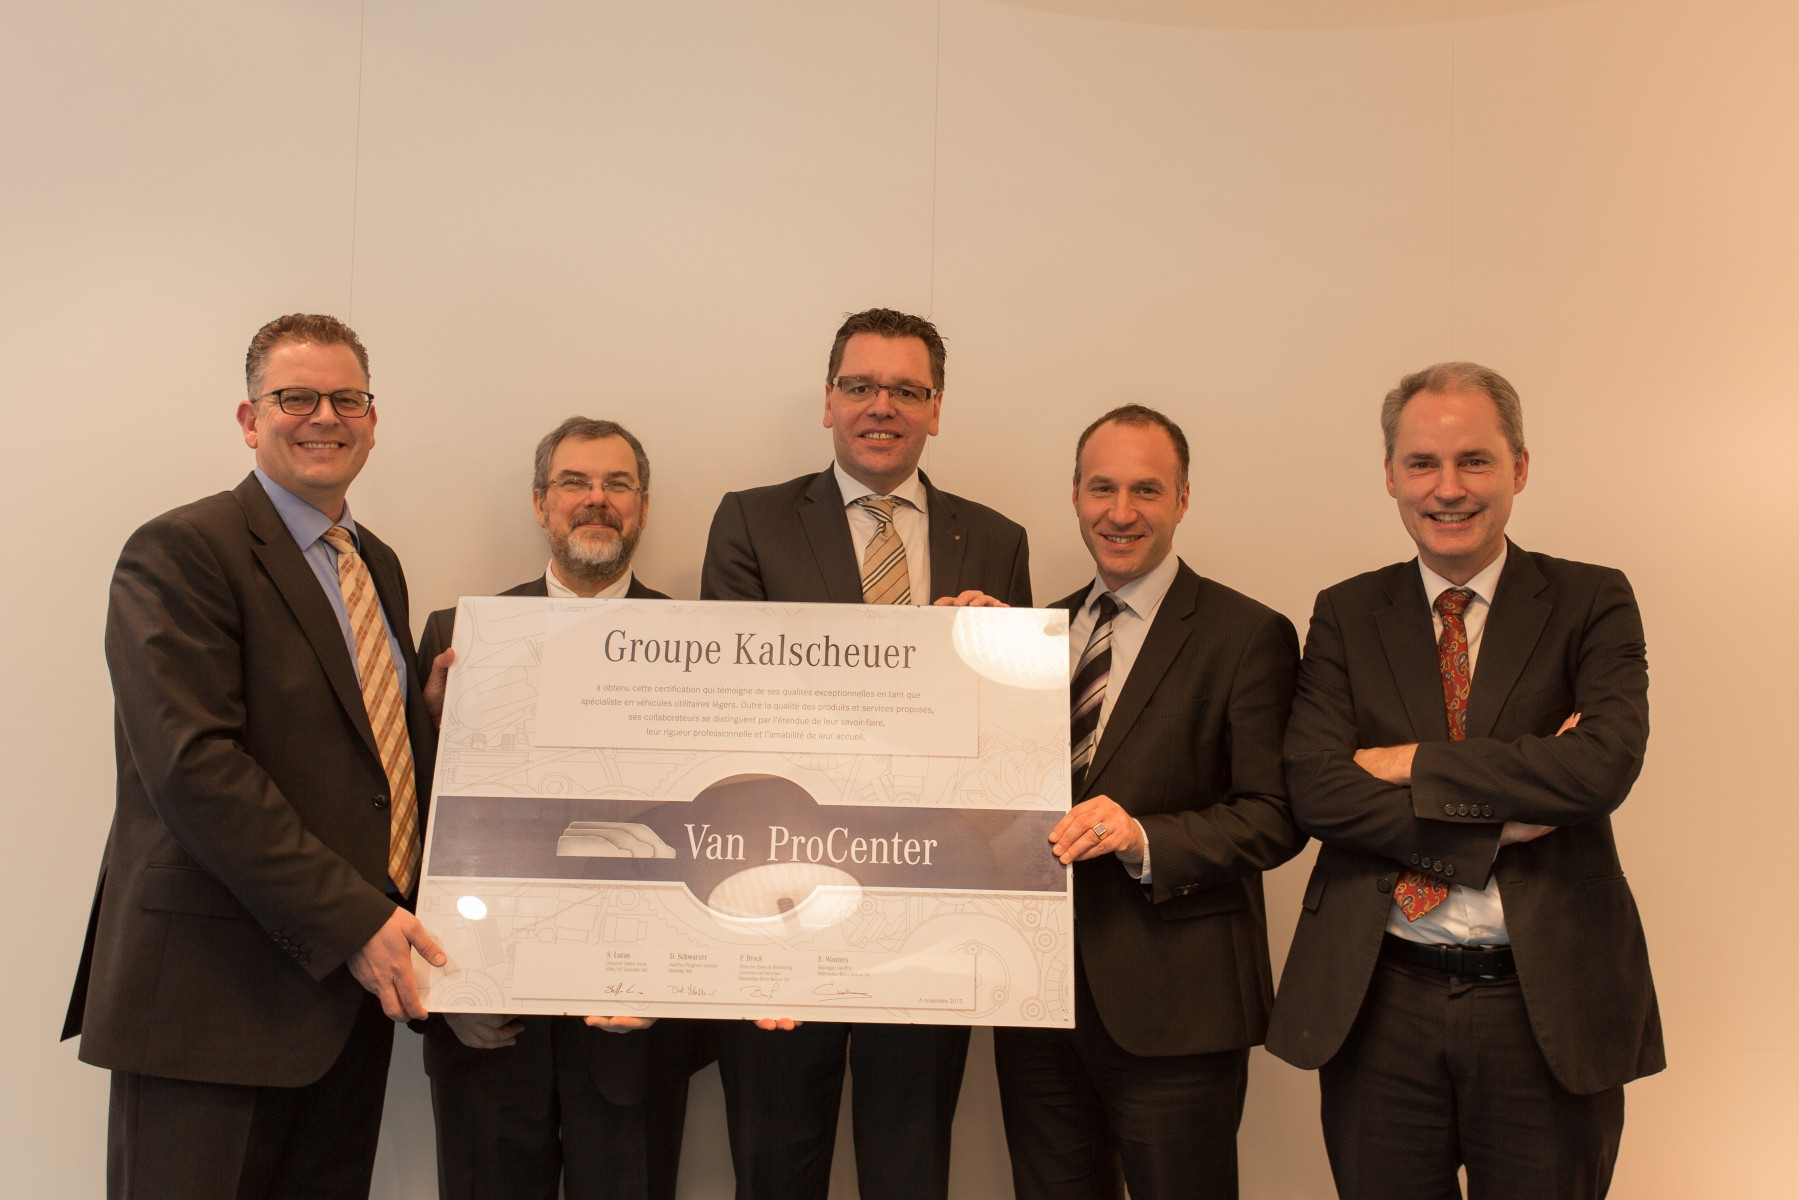 Steffen Lucas, Director Sales  Marketing Vans Europa Denis Regnier  Michael Kalscheuer, Group Kalscheuer Wolfgang Pipperger, Managing Director Vans MB BeLux Peter Brock, Managing Director Trucks MB BeLux